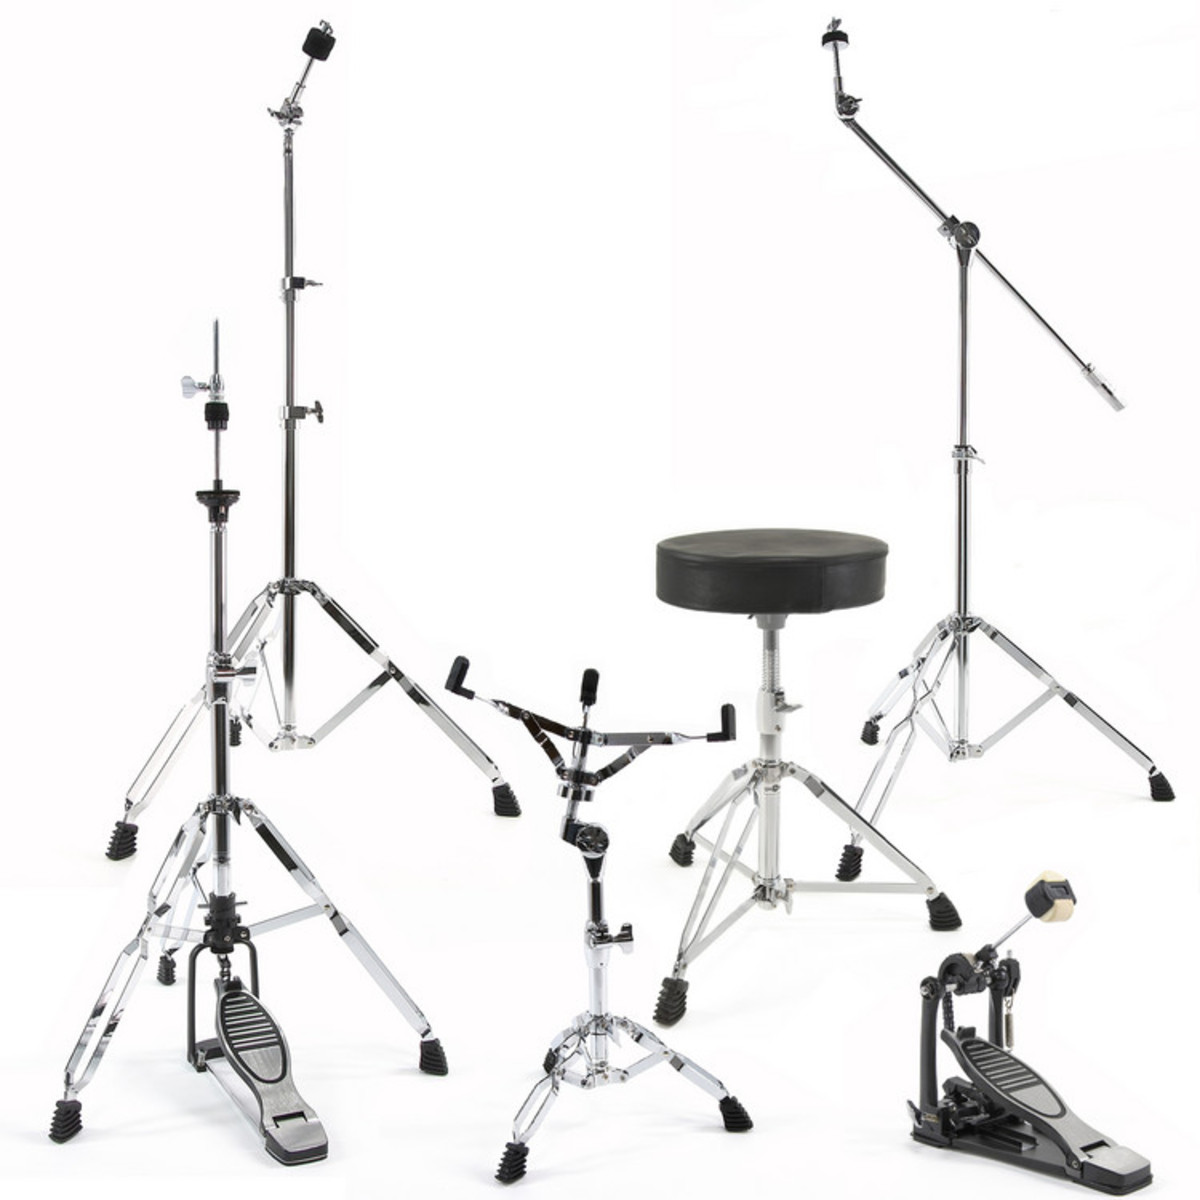 Image of Complete Drum Hardware Pack by Gear4music